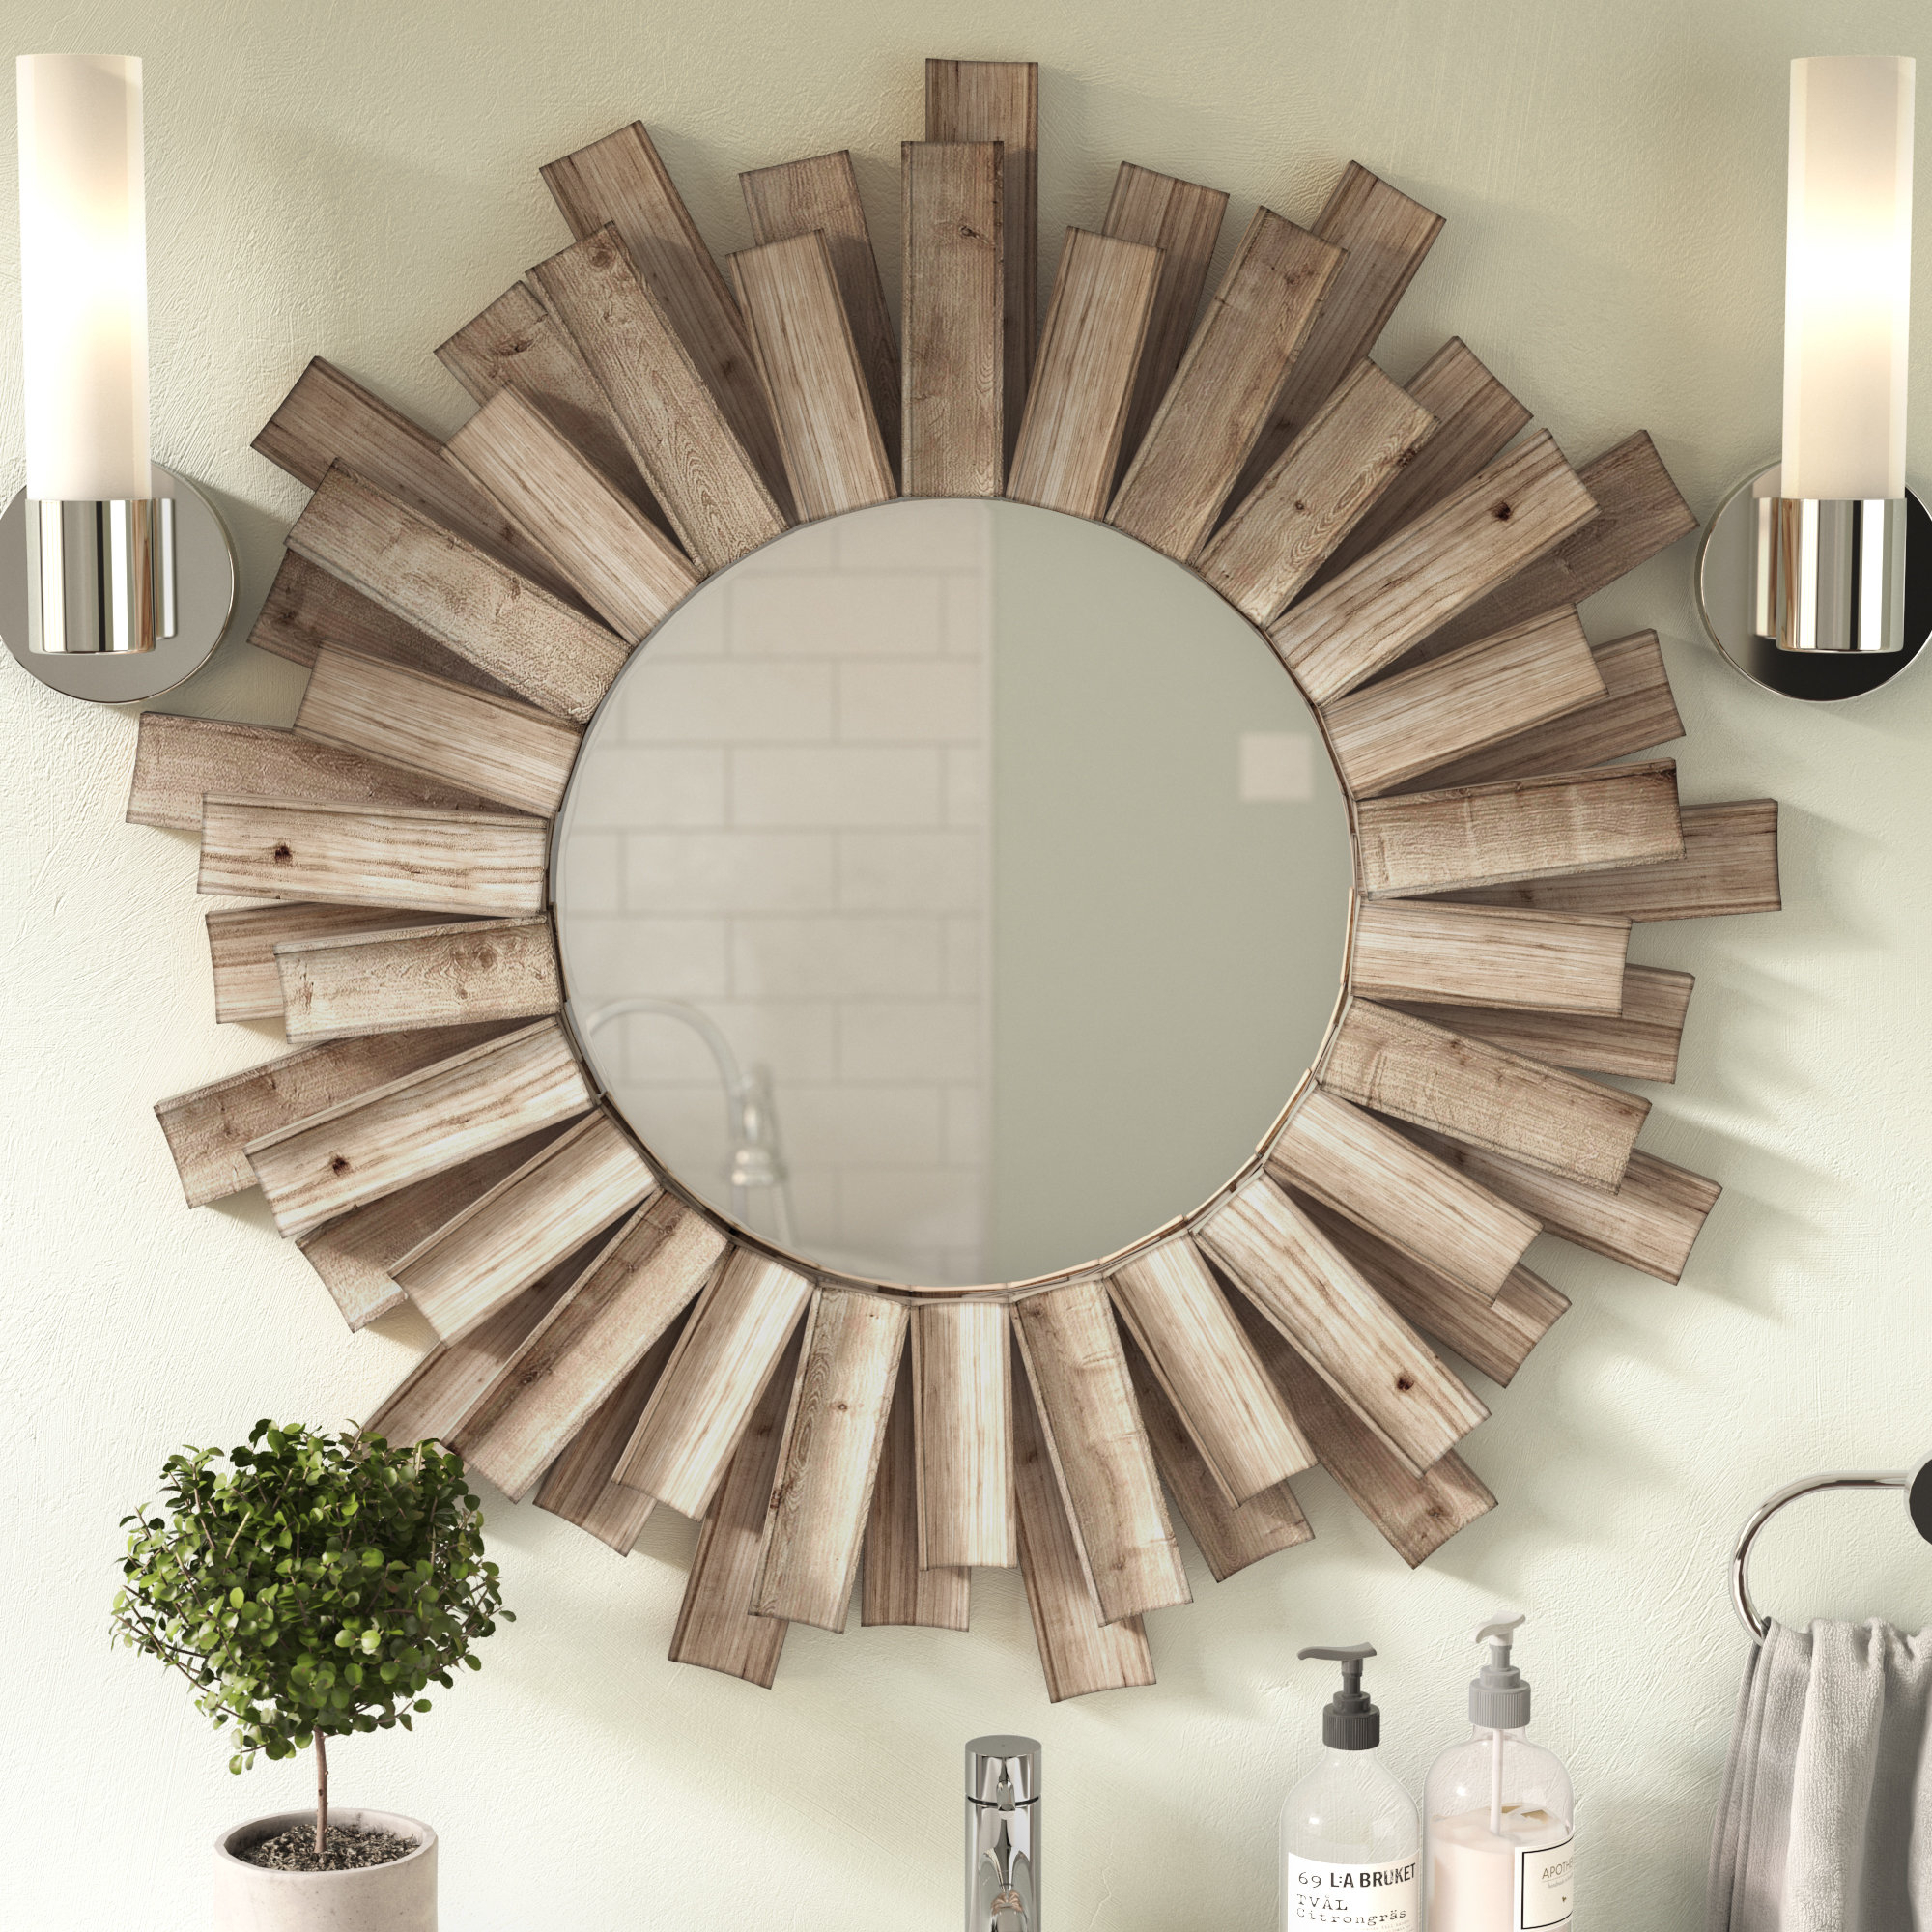 Details About Union Rustic Perillo Burst Wood Accent Mirror With Perillo Burst Wood Accent Mirrors (Image 6 of 20)